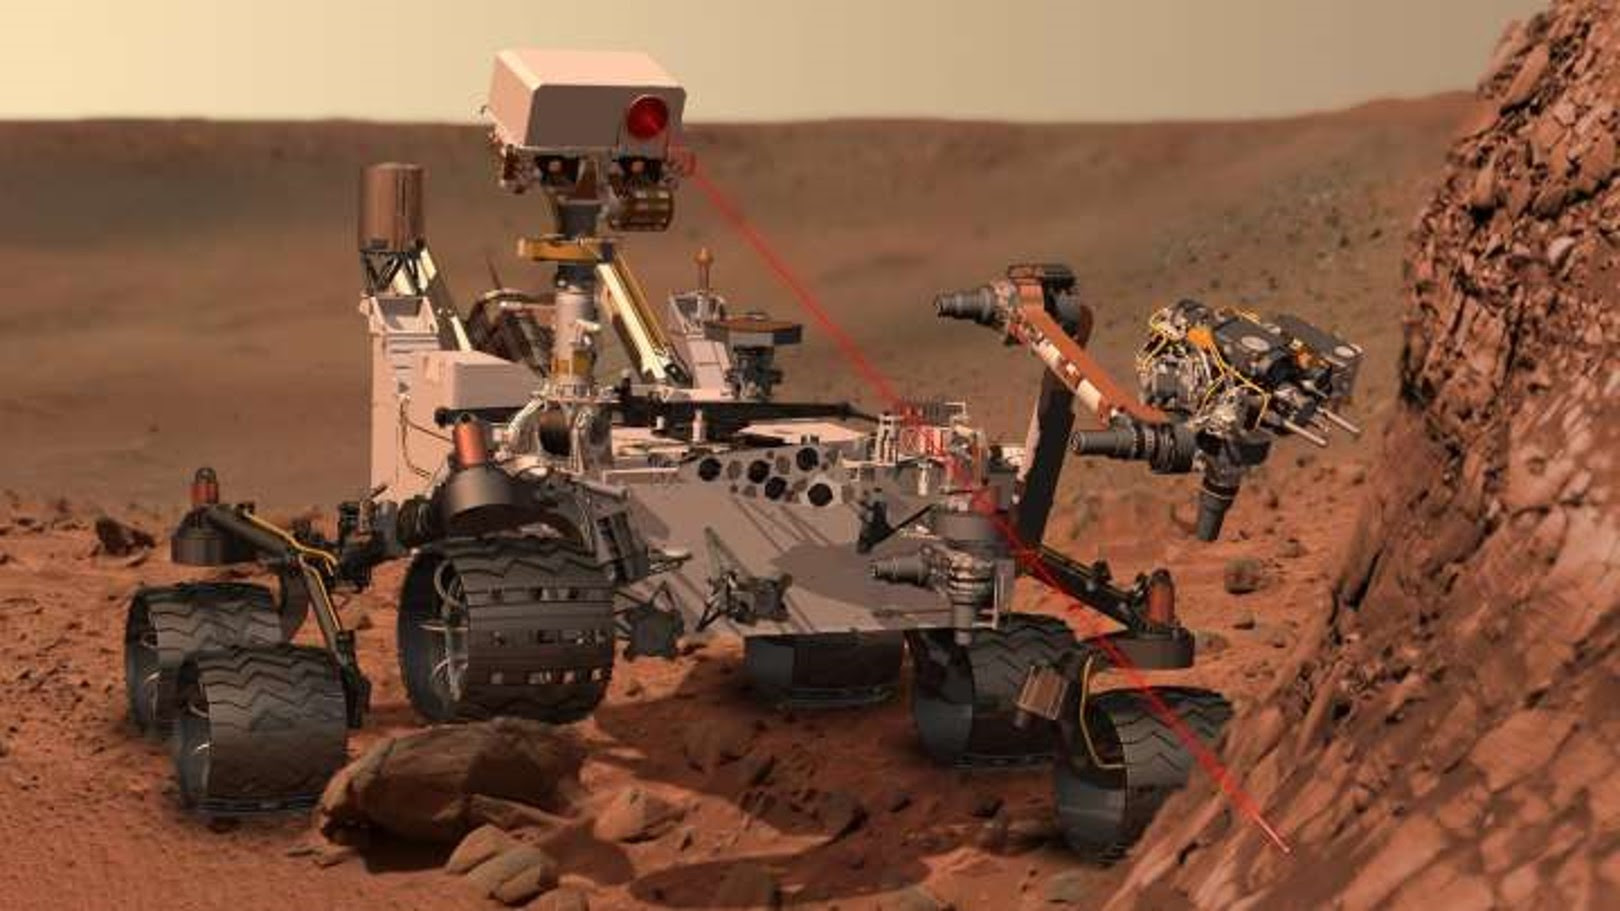 Mars Rover - Artificial Intelligence Applications - Edureka